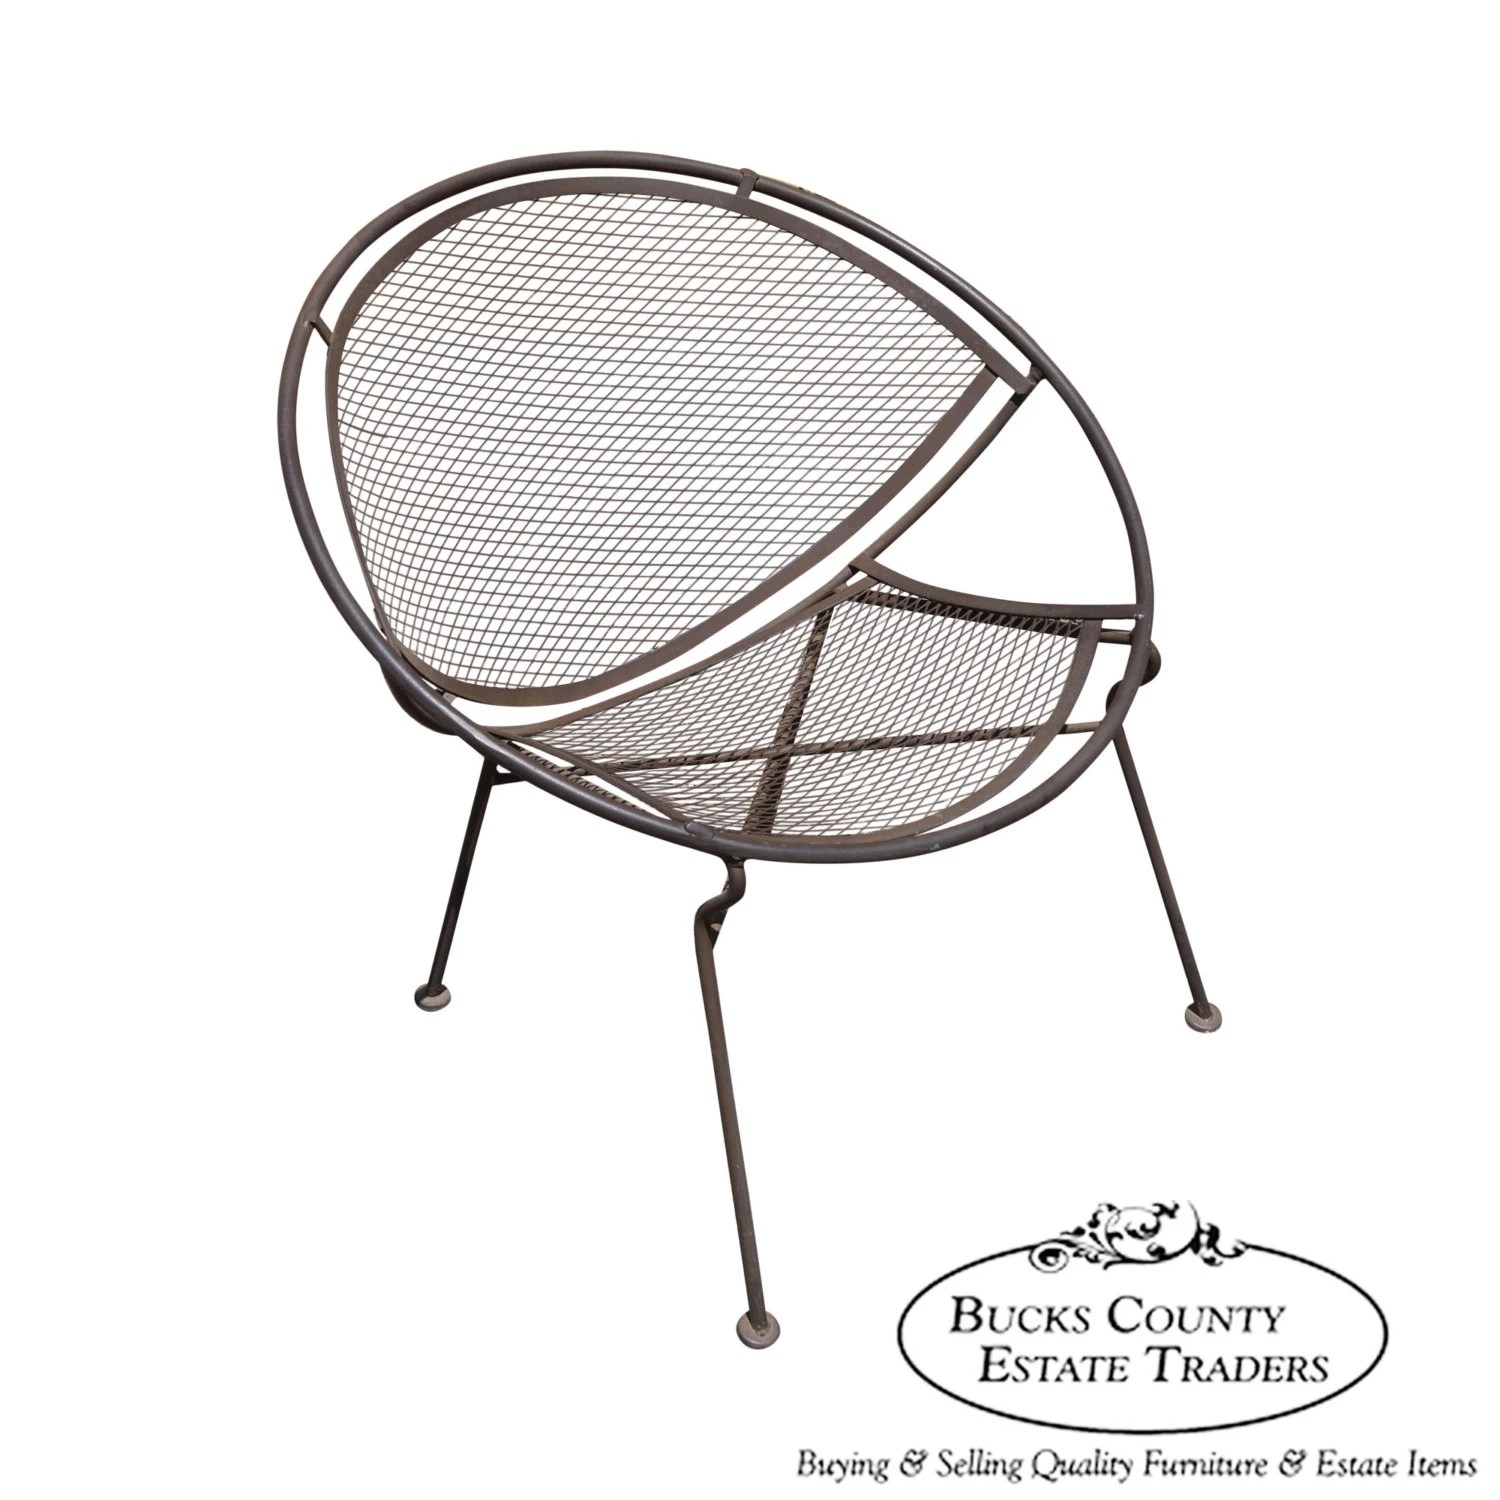 clam shell chair mary engelbreit of bowlies vintage expanded metal patio round by bucksestatetraders